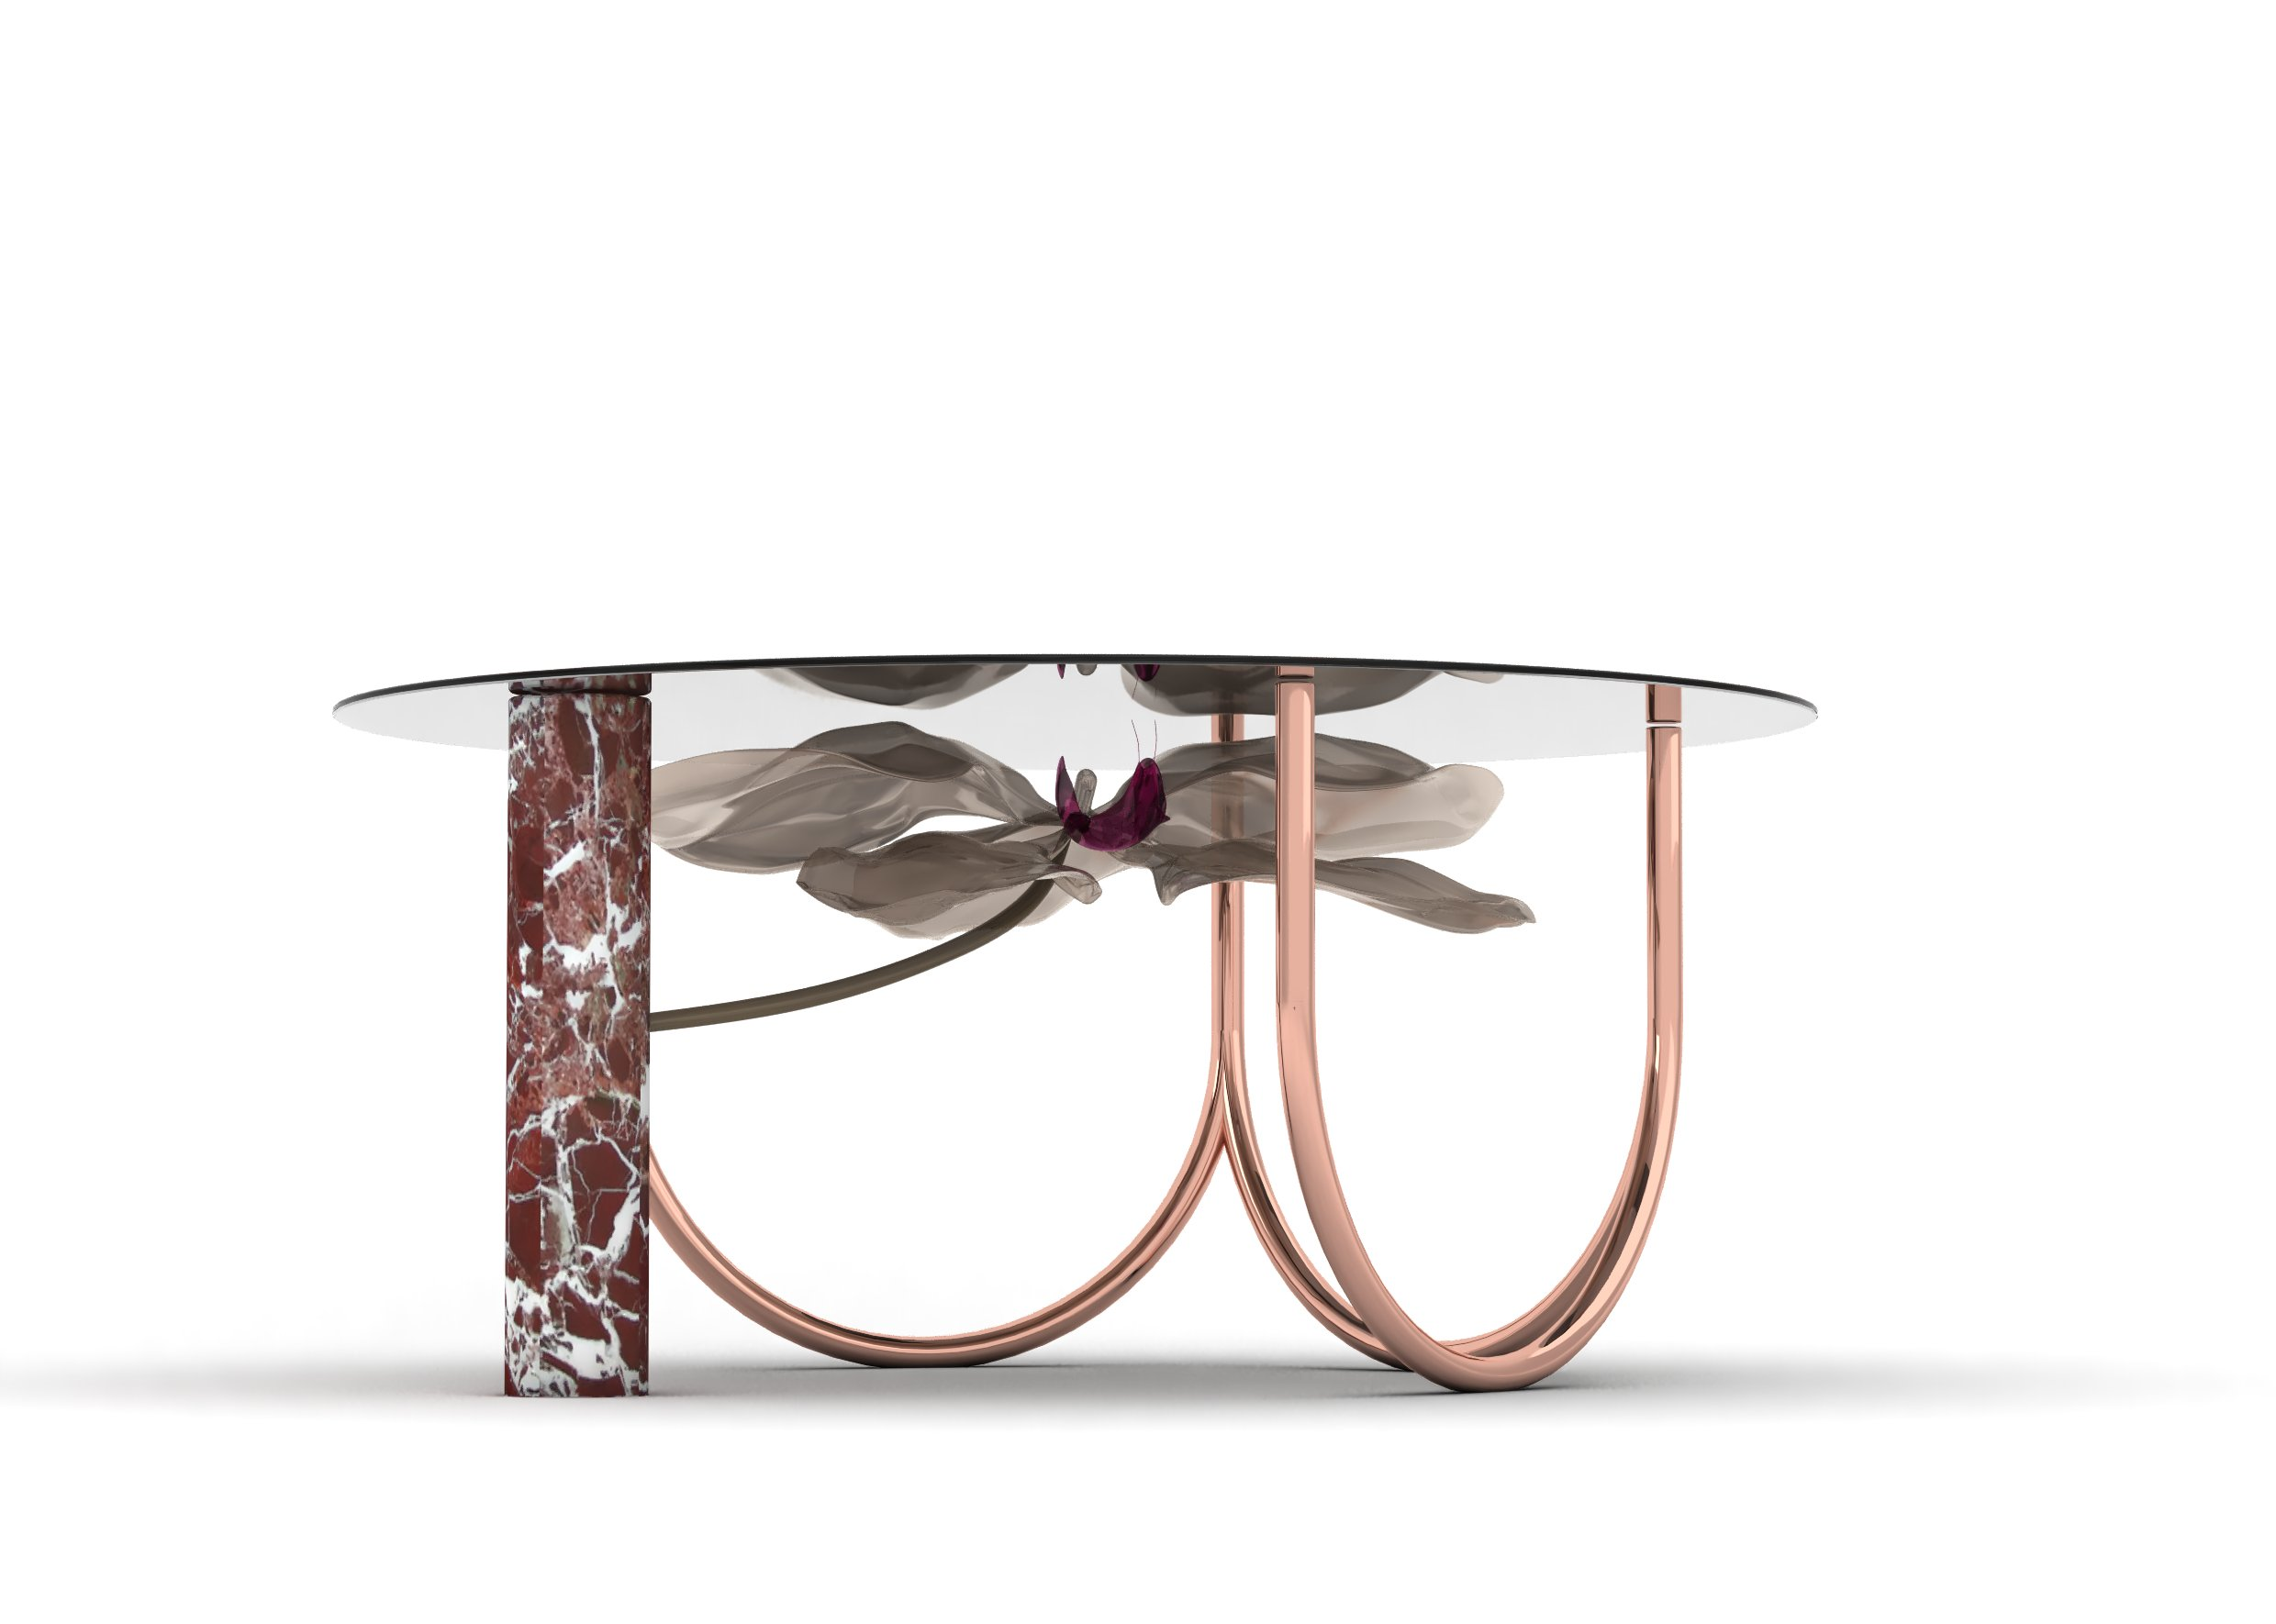 Glass sculpture furniture, art design table, luxury gallery dining table, Italian luxury dining table, luxury bespoke furniture design, luxury marble table lamp italy, luxury marble table italy, orchid furniture, golden contemporary center pieces, luxury pink dining table